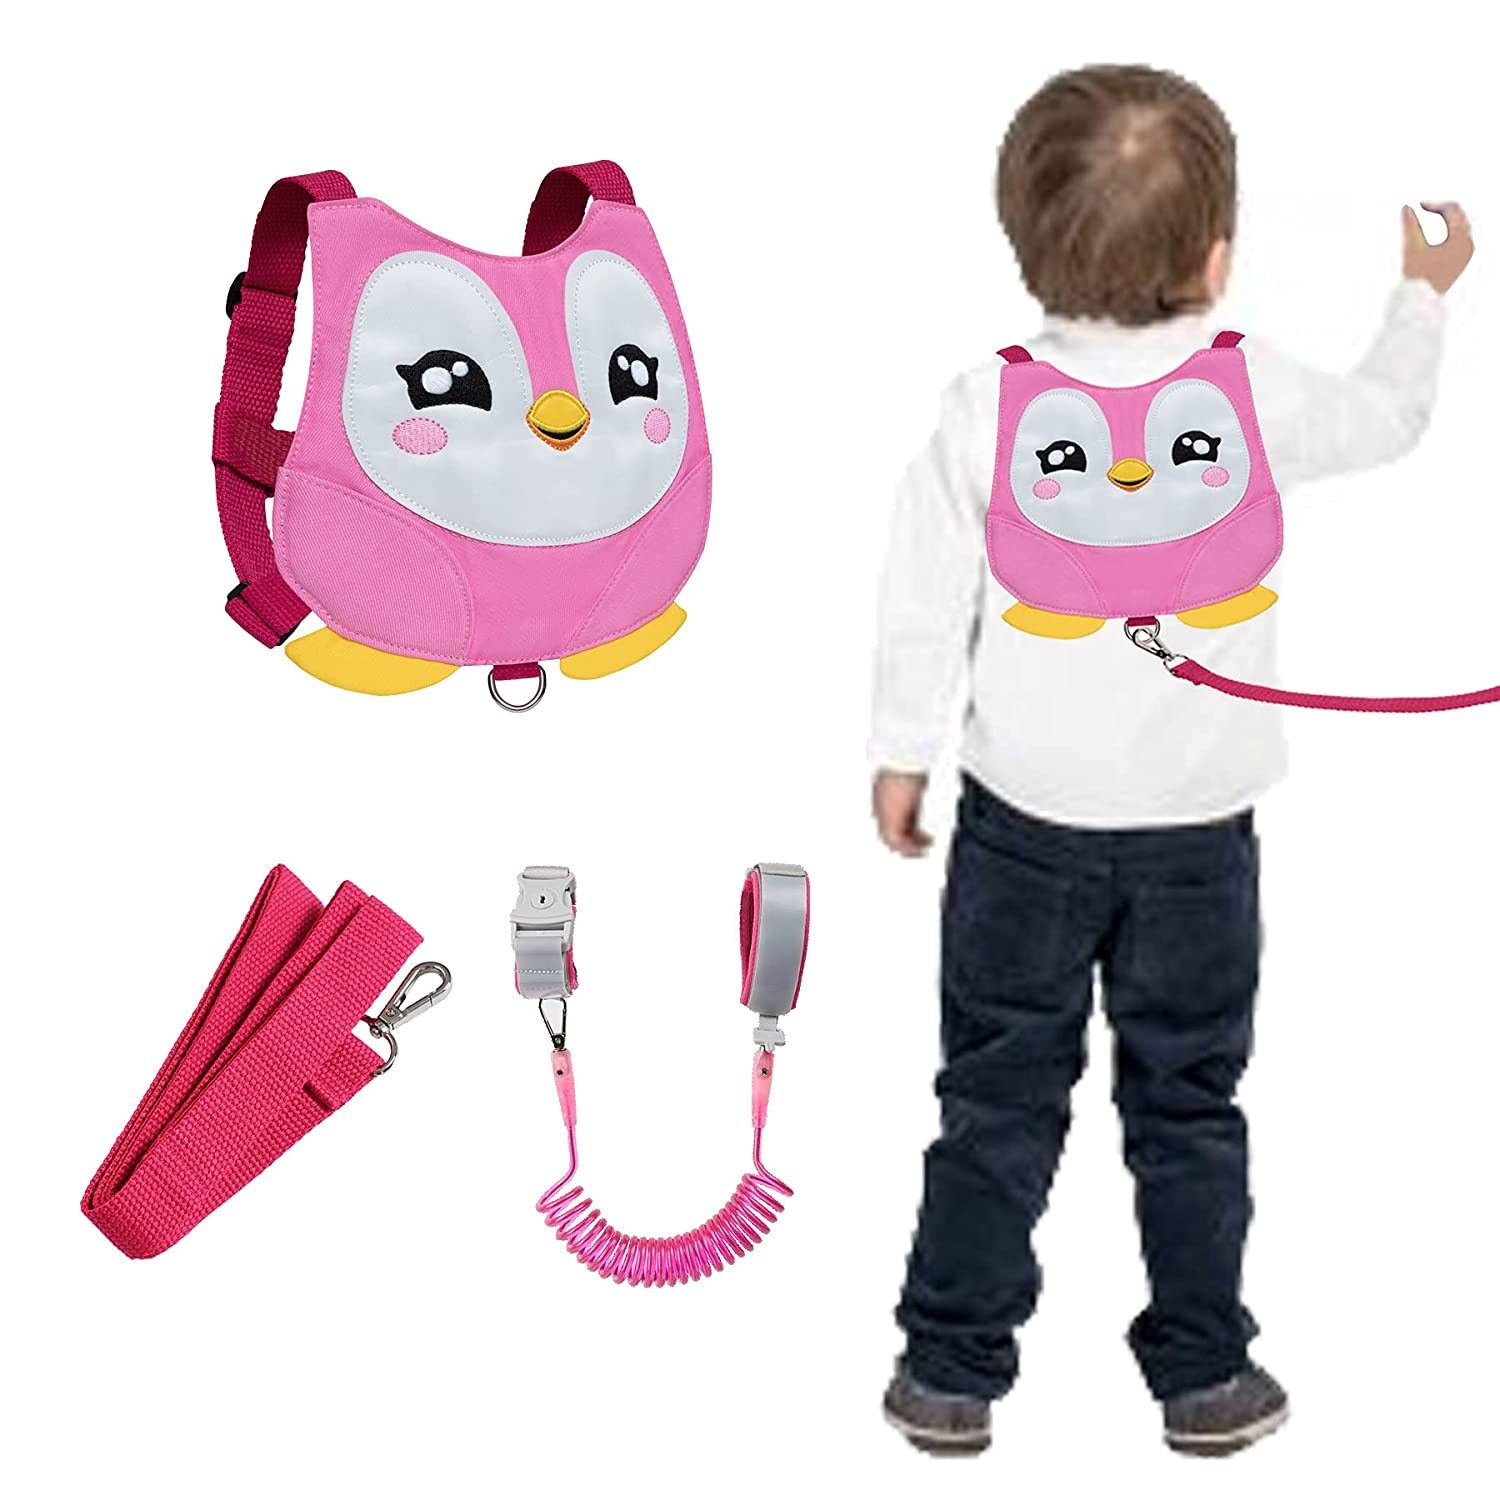 Penguin Toddlers Safety Harness with Leashes Kids Anti Lost Wrist Leash Link Wristlets (Penguin Pink)